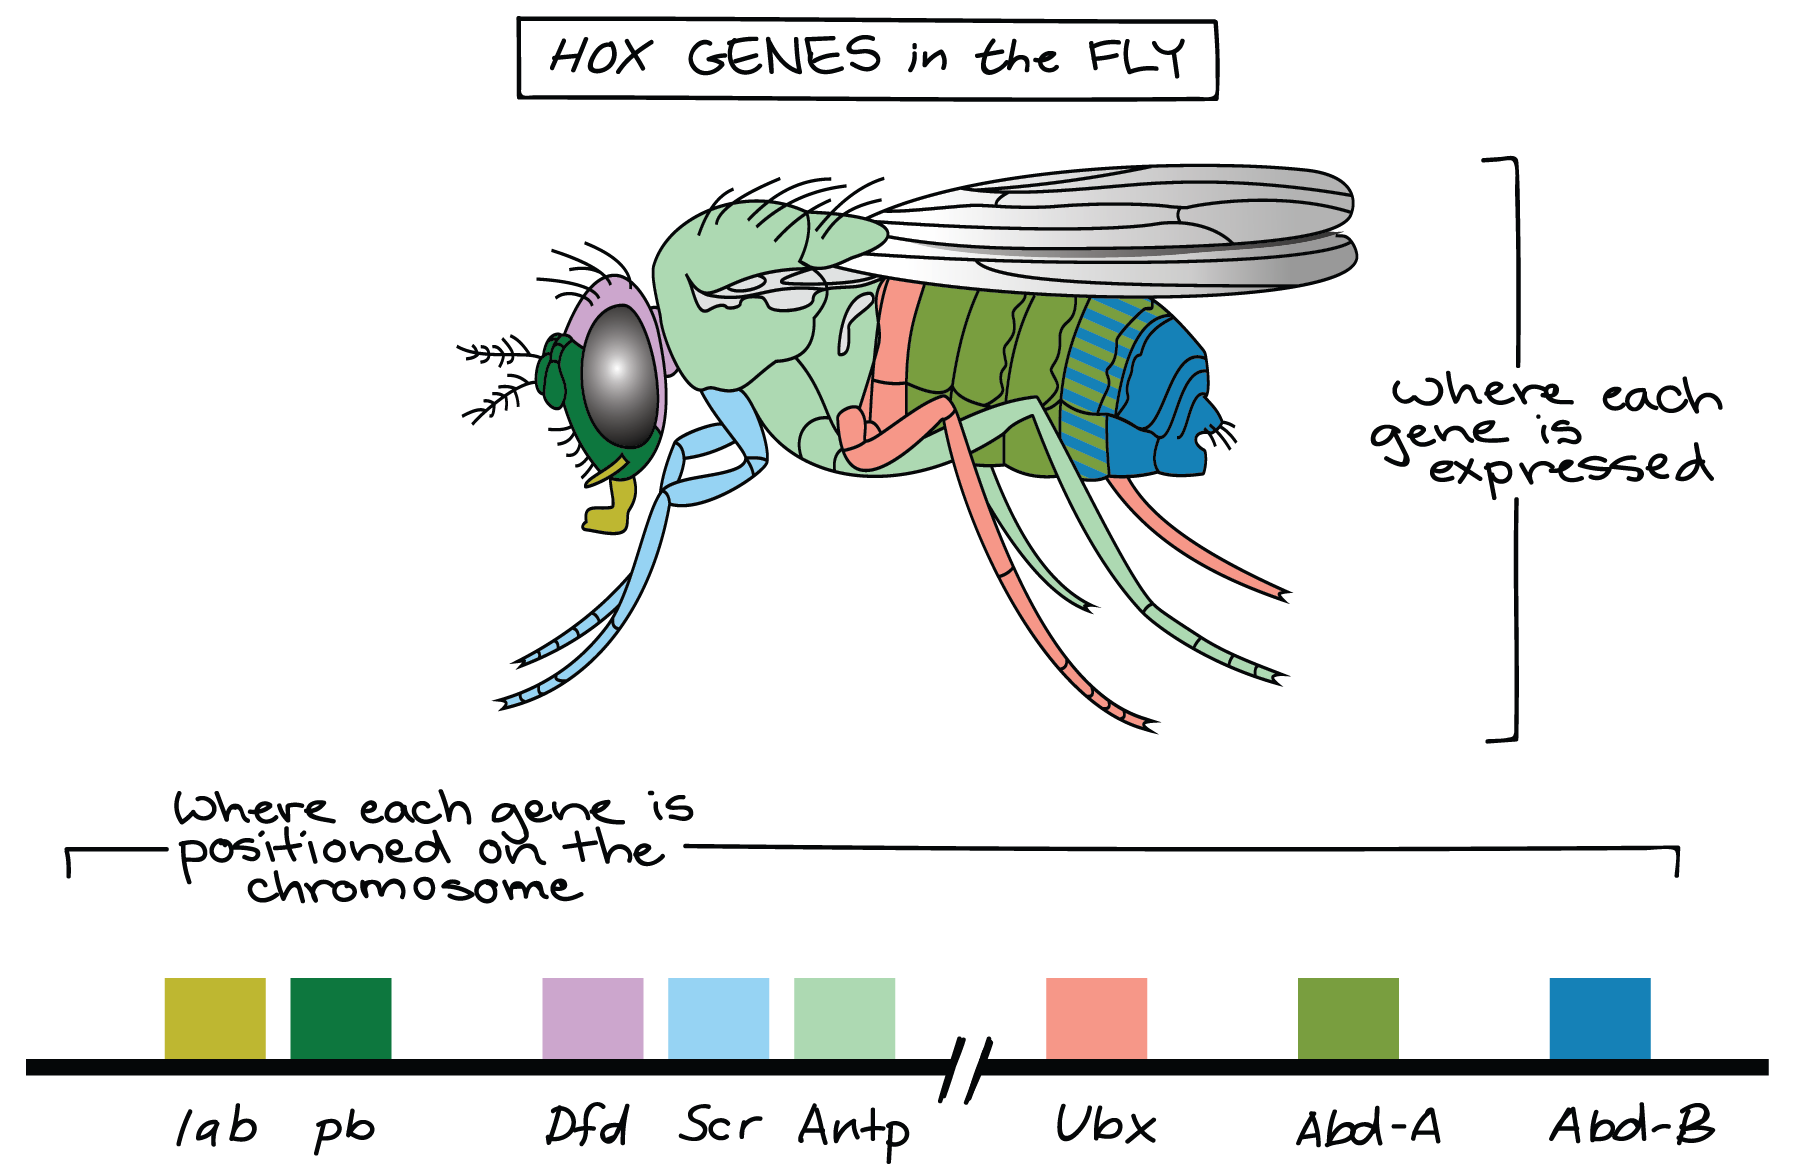 Function drawing fruit fly. Homeotic genes article khan